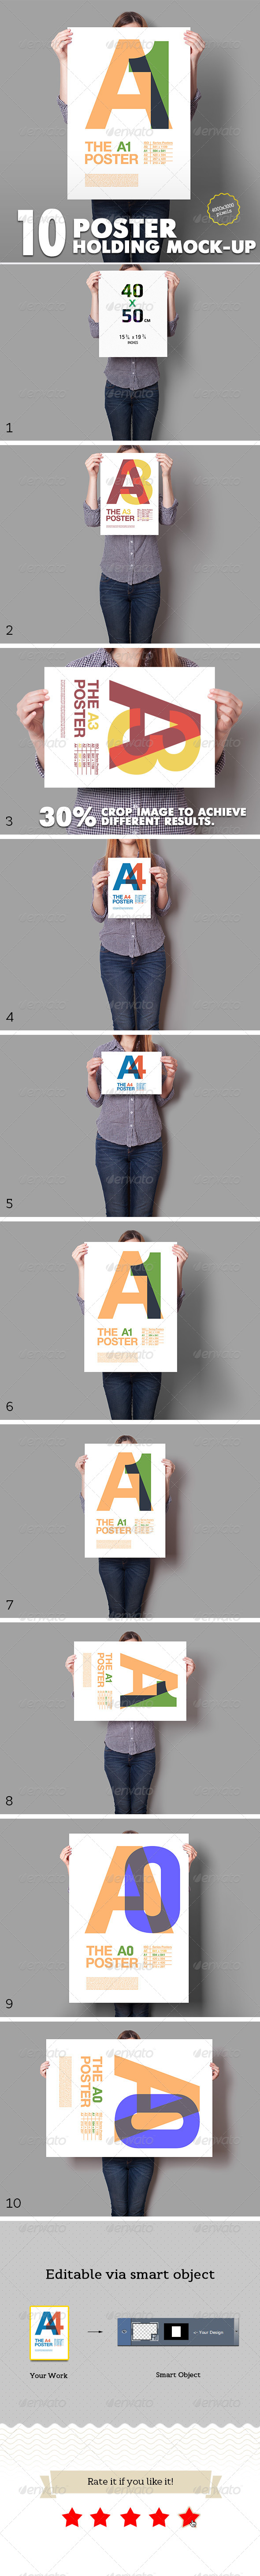 GraphicRiver Poster Mockup 10 Different Images 5788286